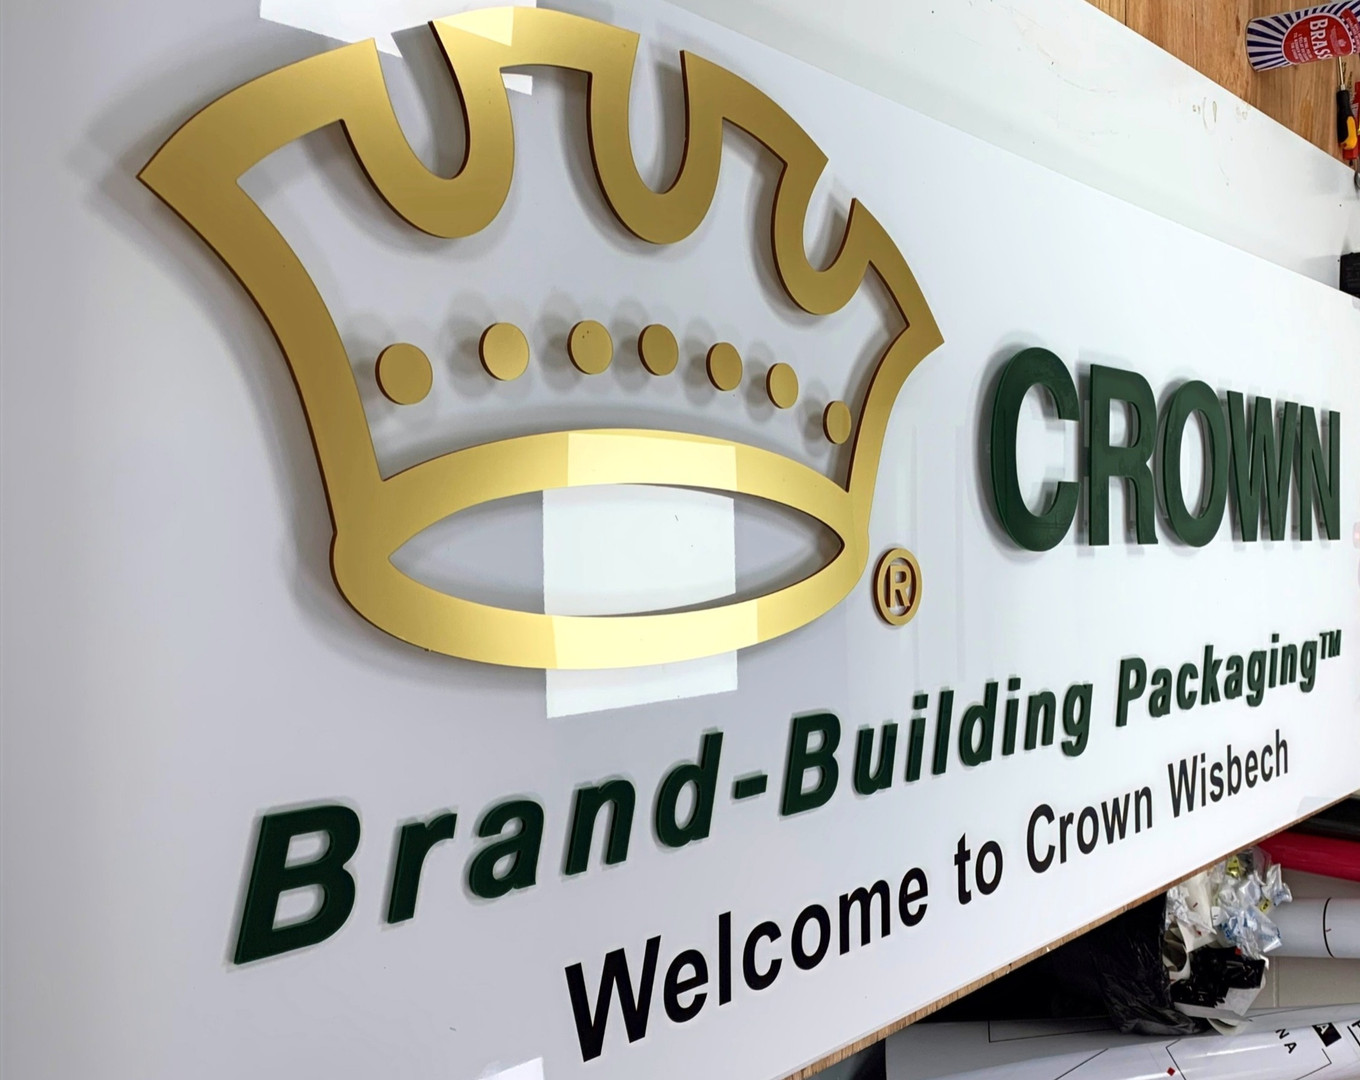 crown%2520signage_edited_edited.jpg